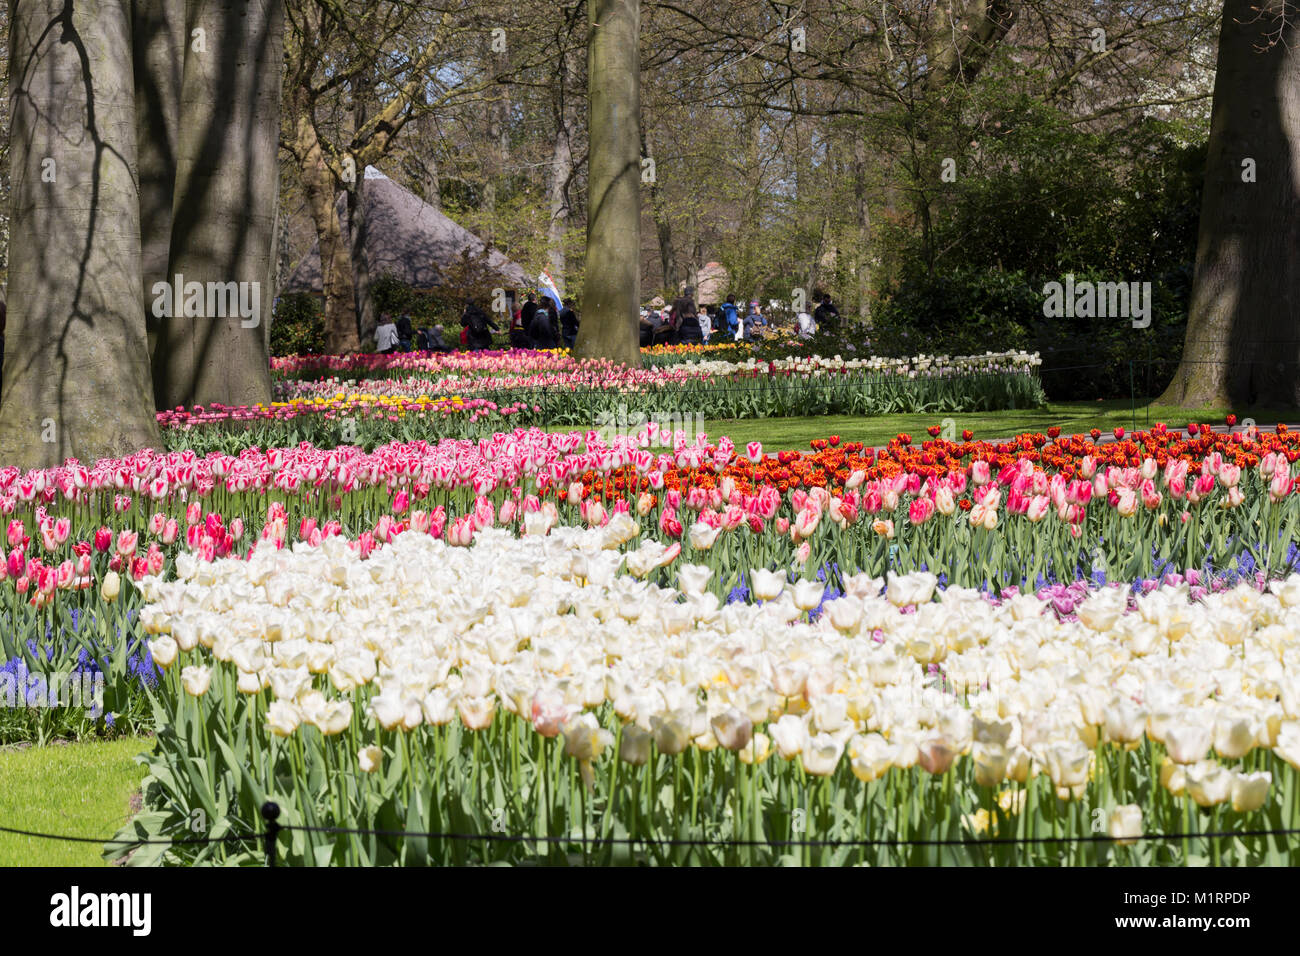 Red And Yellow Tulips In Mass Plantings Stock Photo 173240866 Alamy